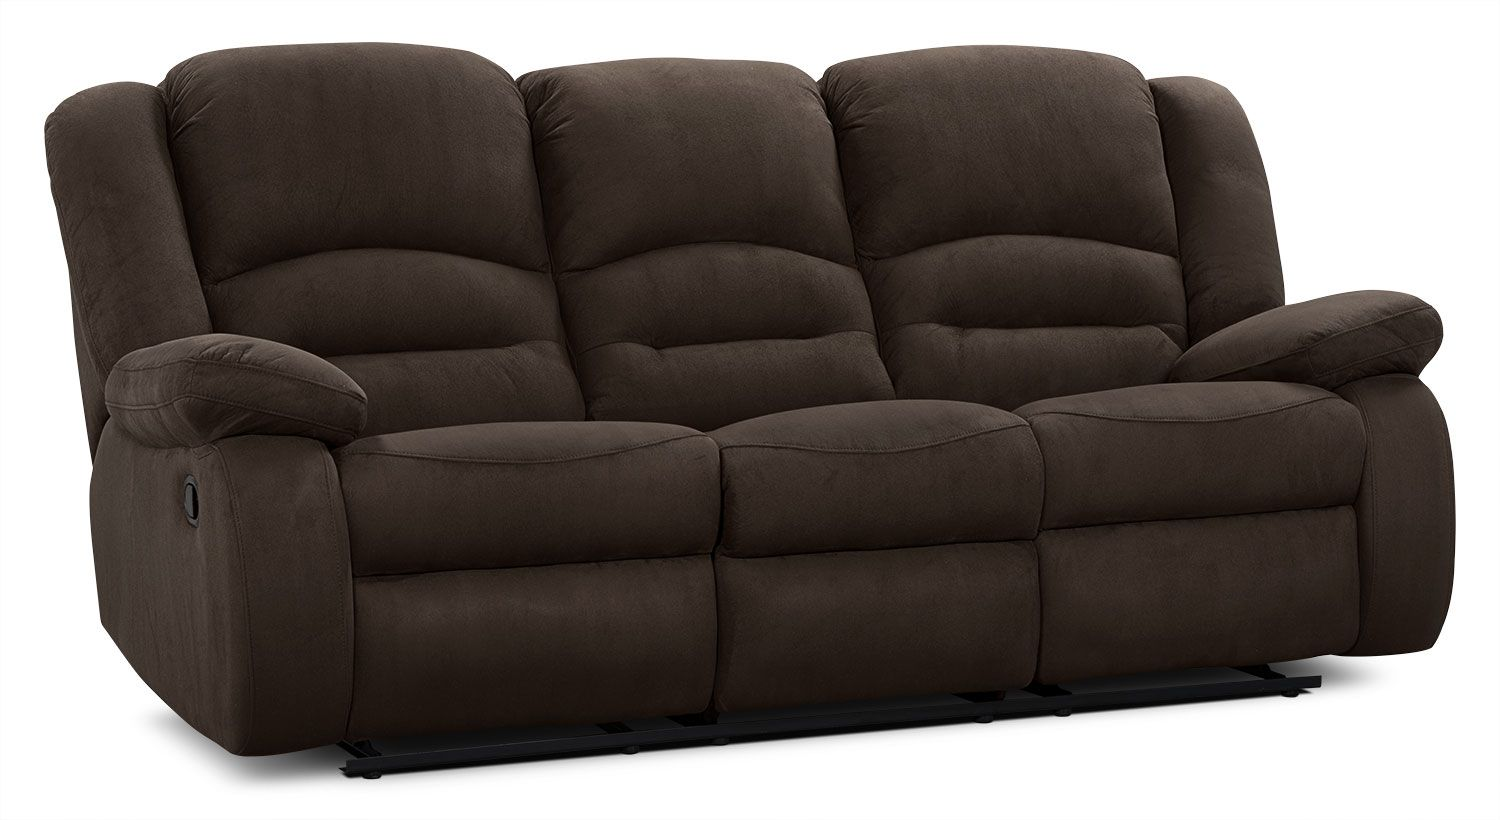 Slipcovers For Sofas The Toreno reclining sofa is simply perfect Covered in a lovely cocoa padded microsuede fabric